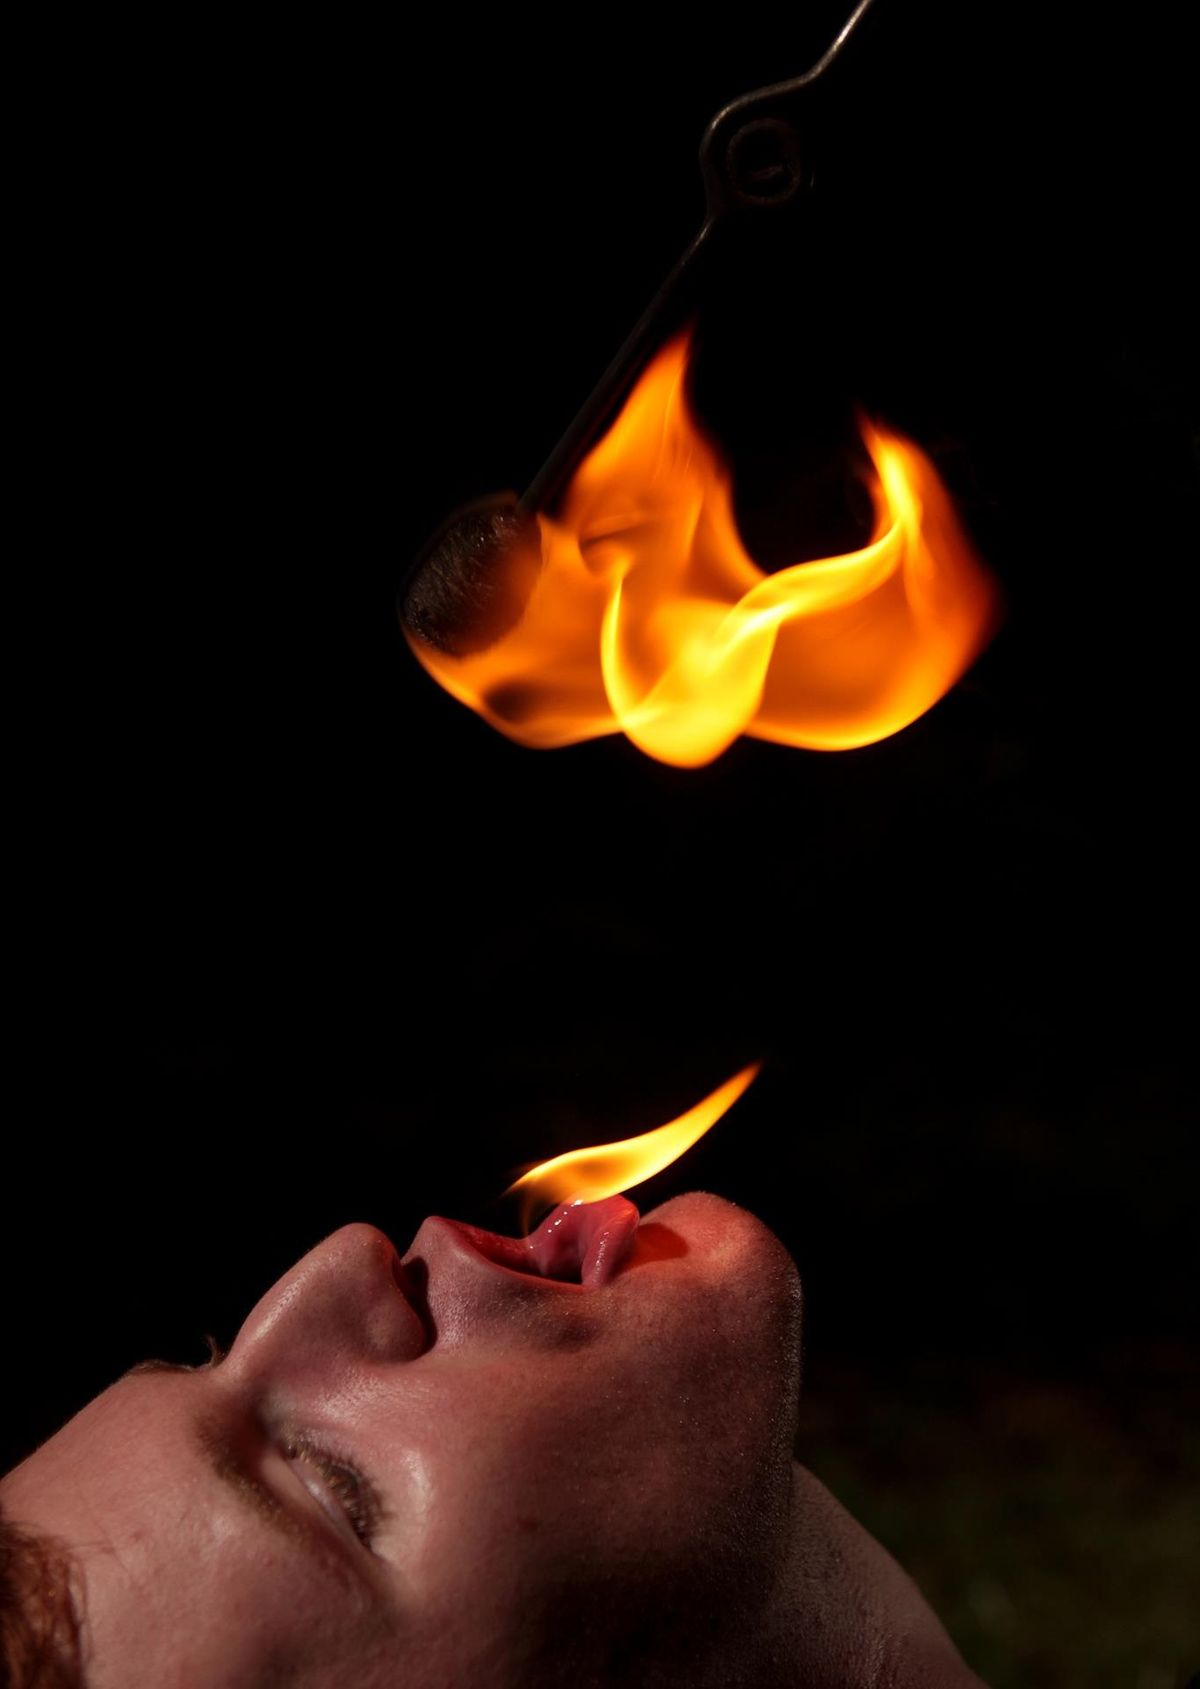 Fire eating - Wikipedia